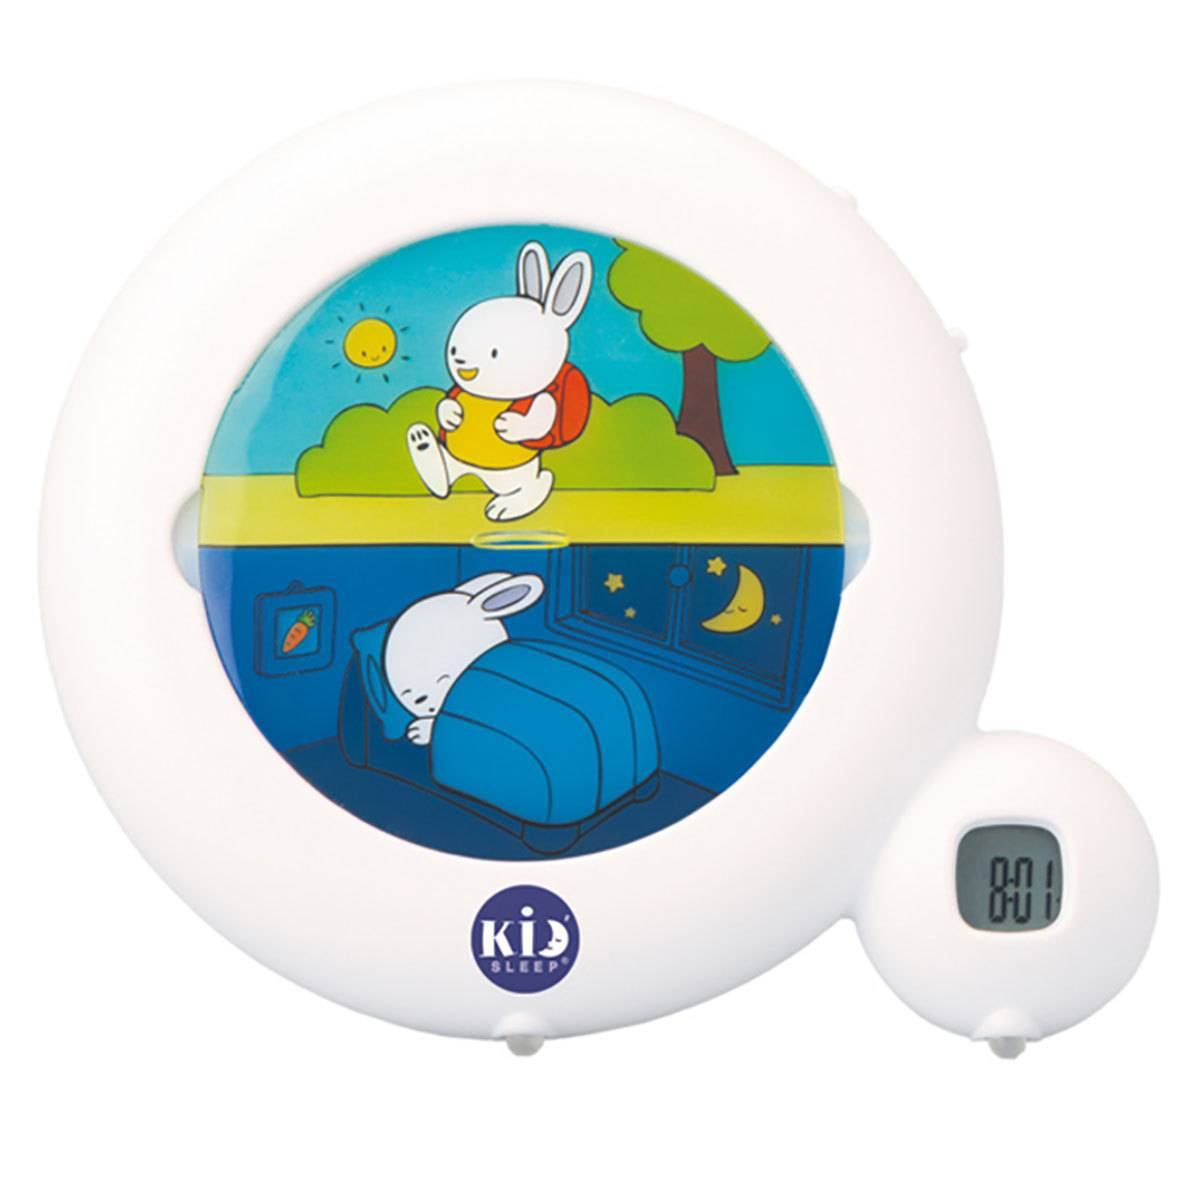 Claessens'Kids Kid'Sleep Classic - Blanc